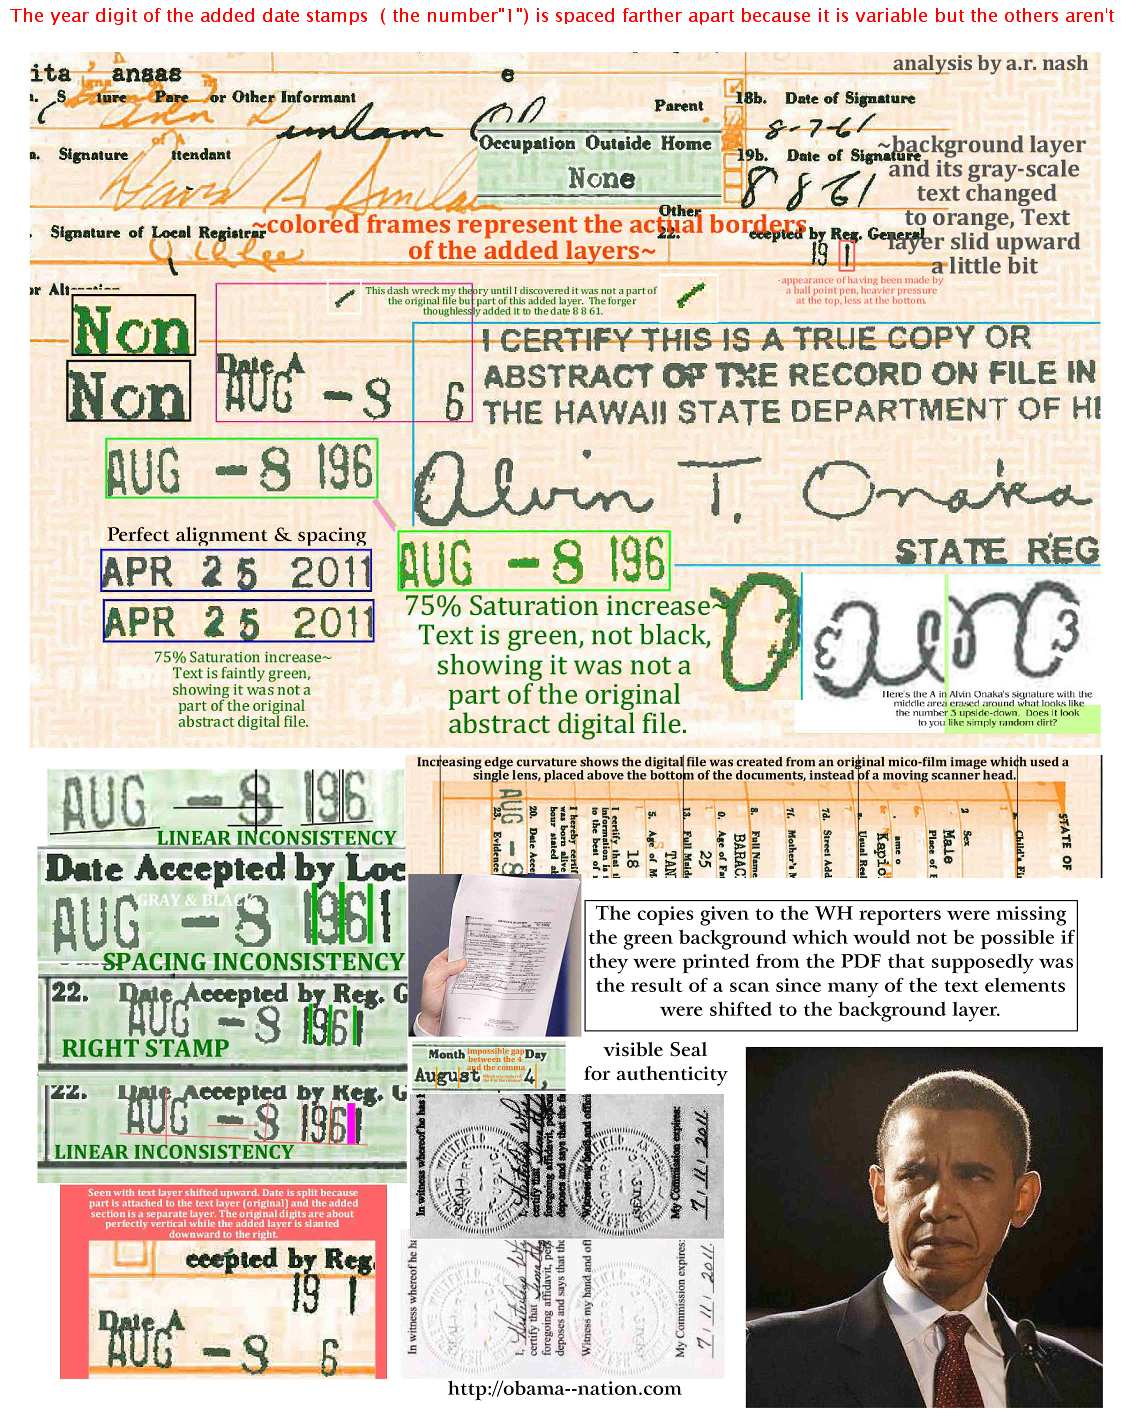 Give us liberty the evidence that proves obamas birth give us liberty the evidence that proves obamas birth certificate that he posted on the white house website is a fake aiddatafo Image collections